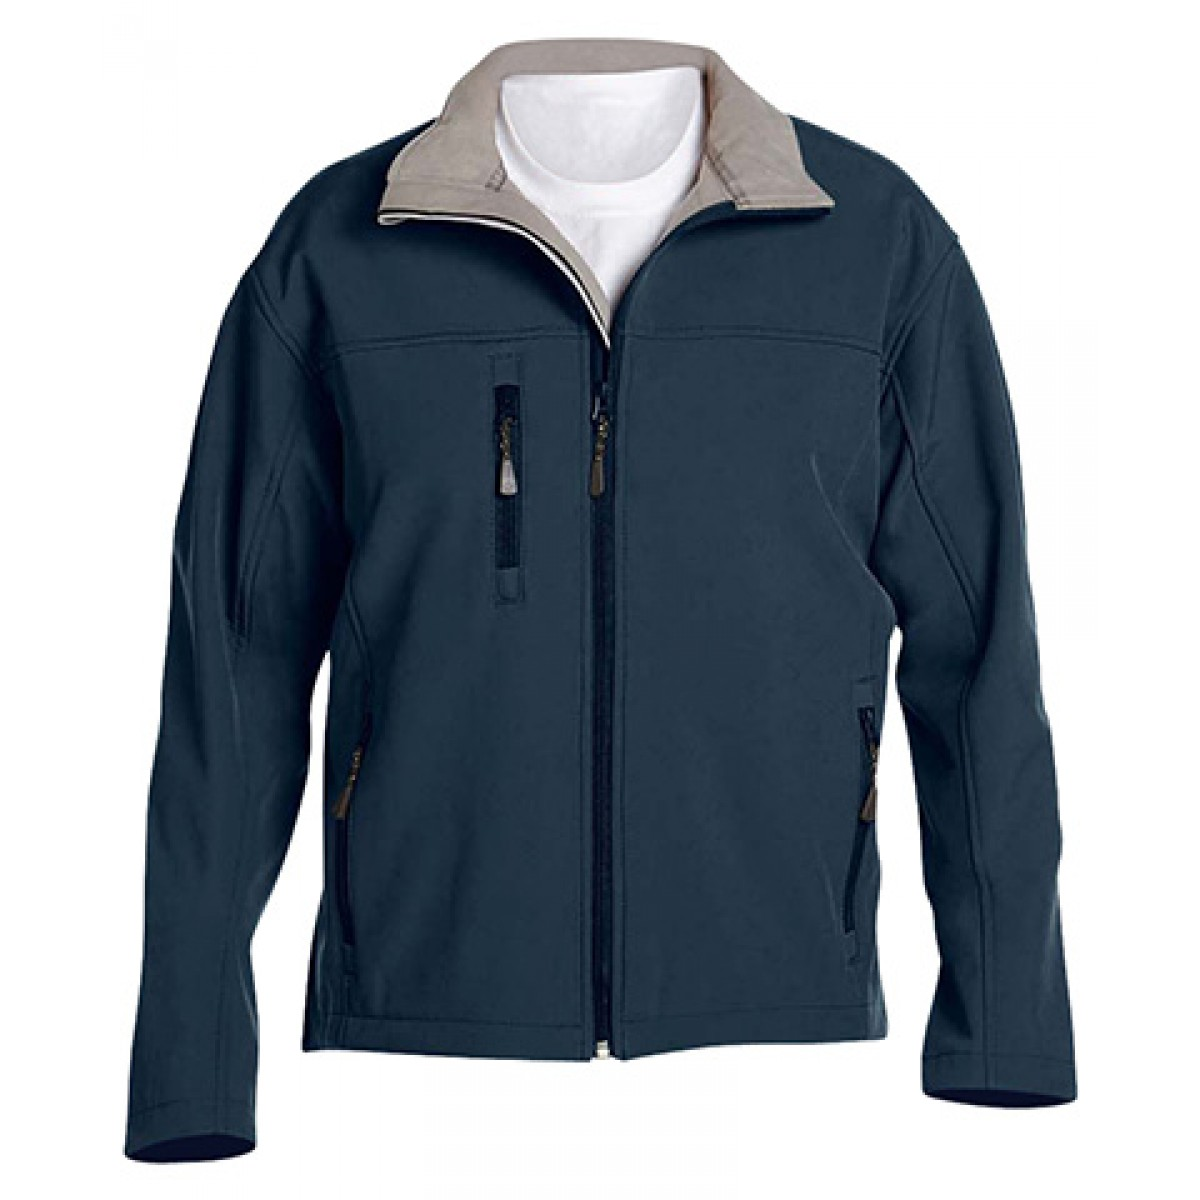 Men's Soft Shell Jacket-Navy-2XL